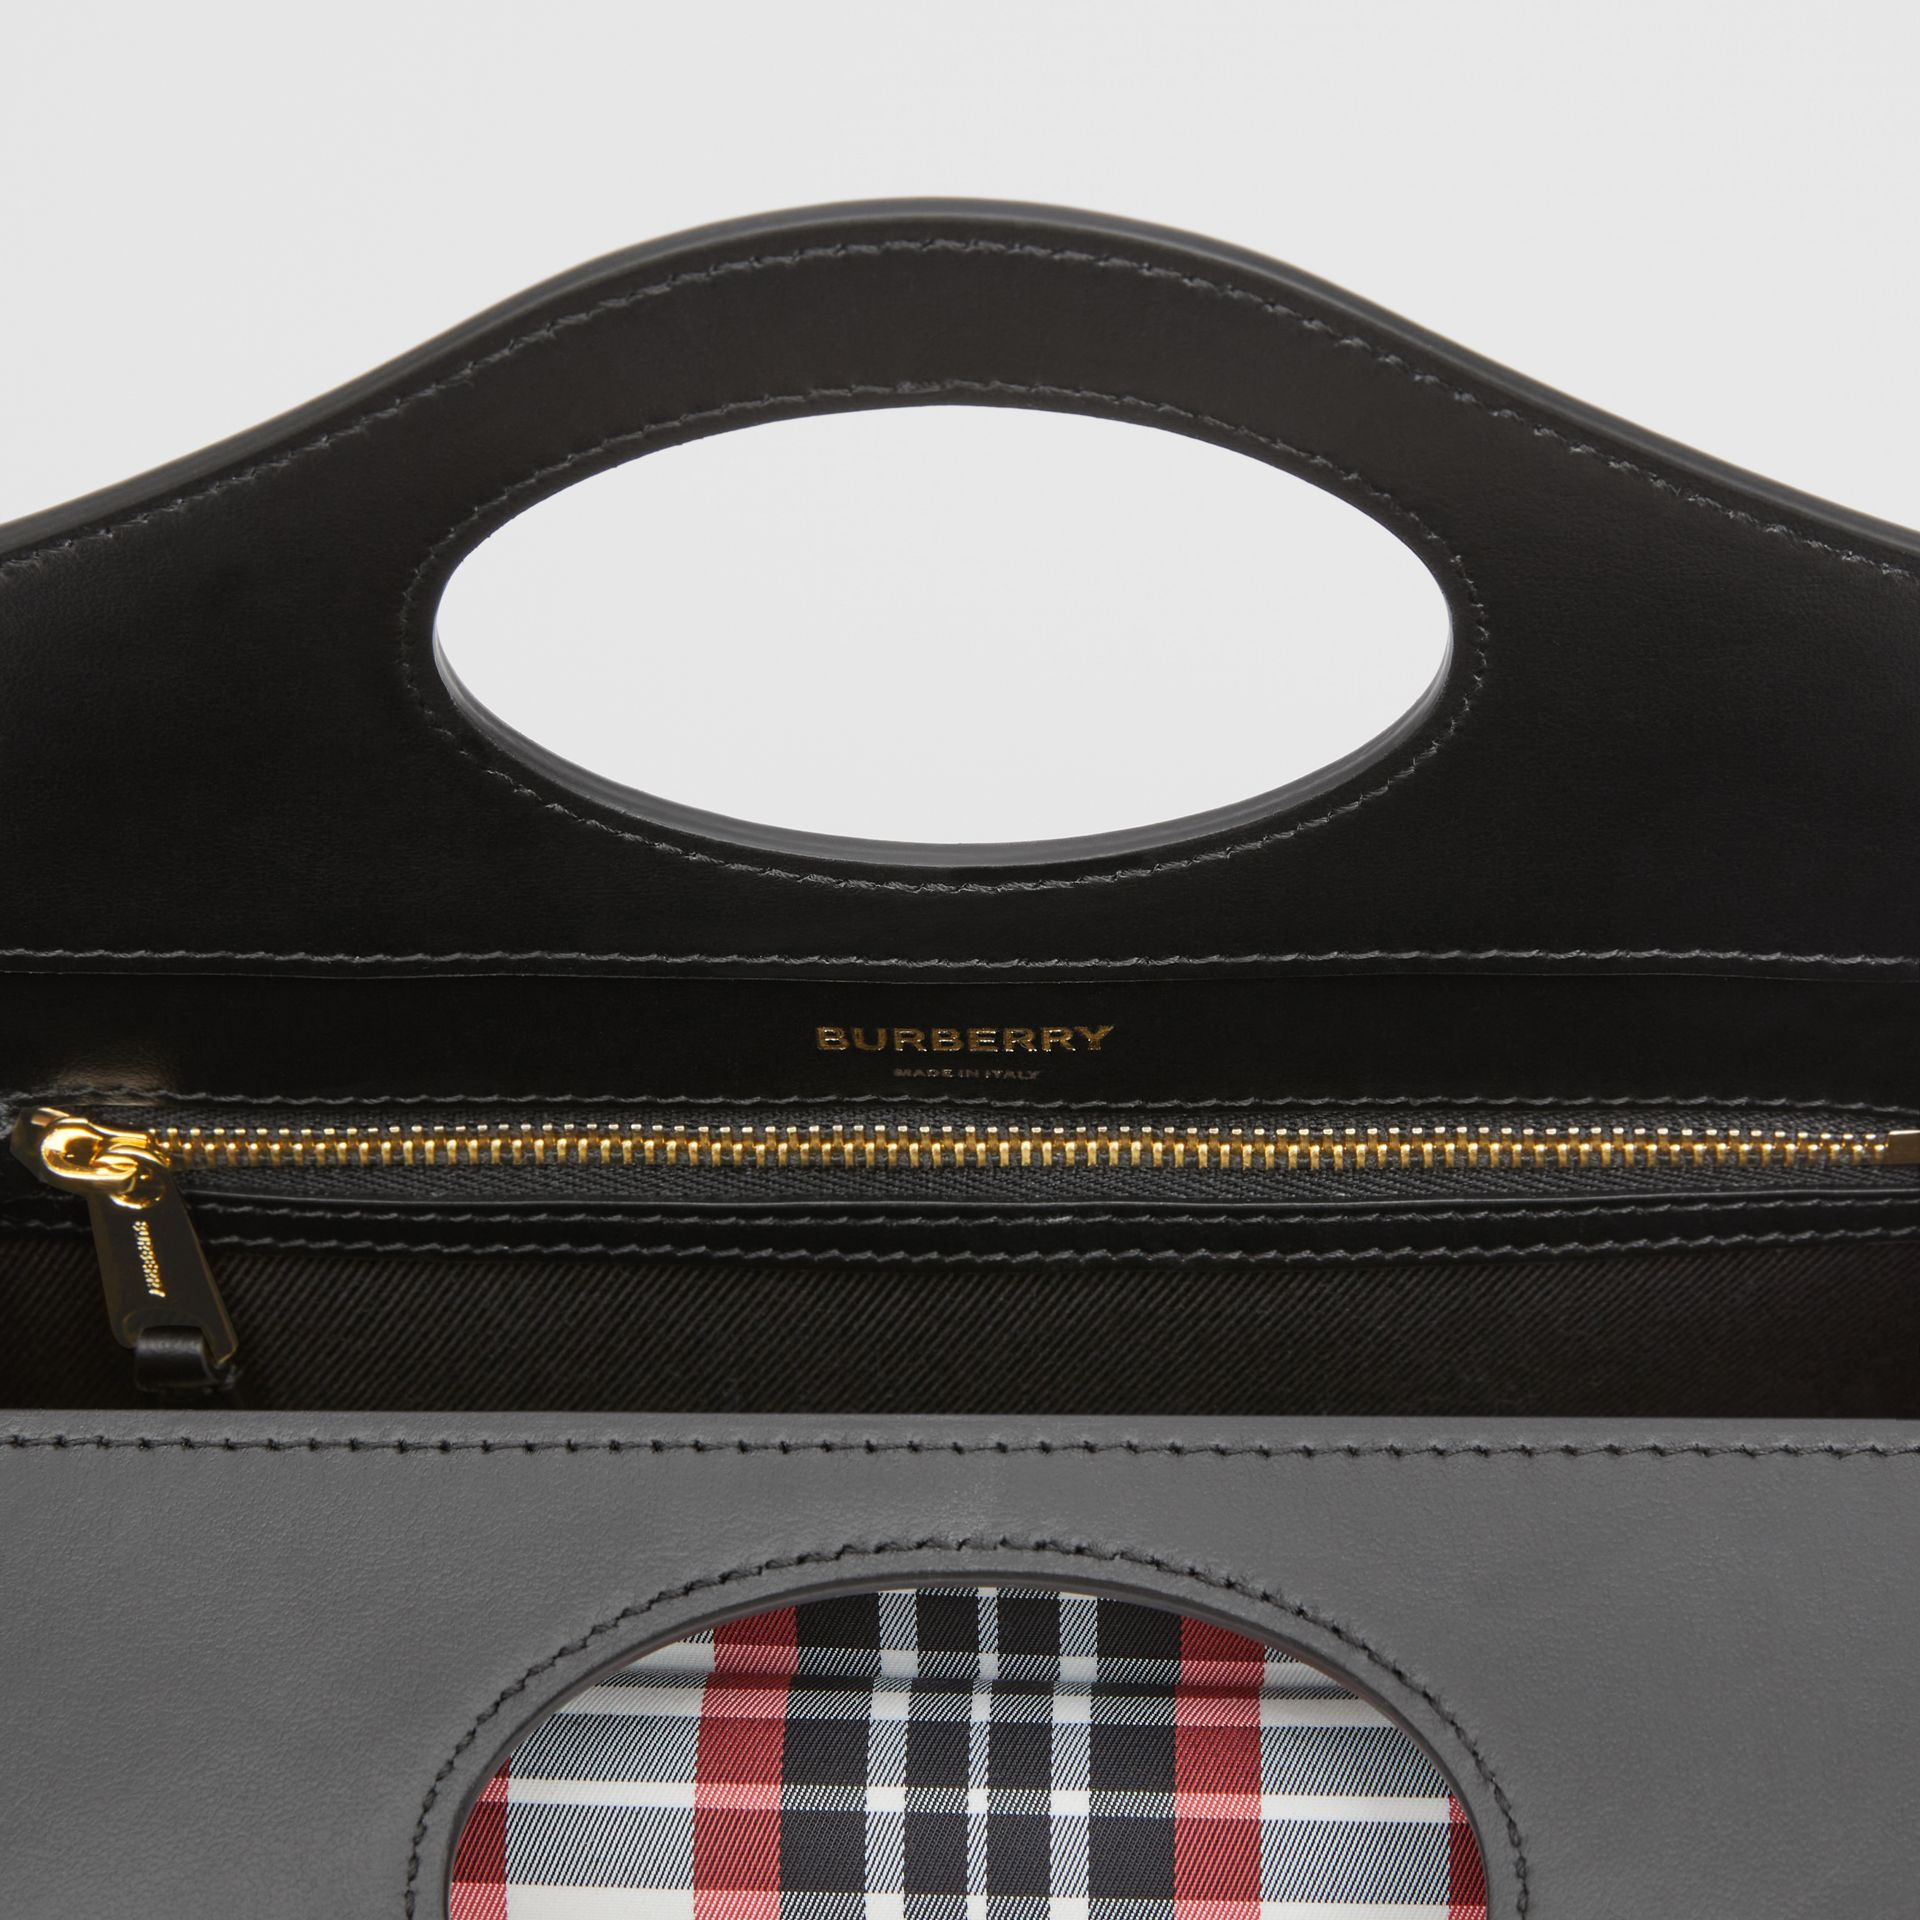 Mini Tartan Nylon and Leather Pocket Bag in Bright Red - Women | Burberry - gallery image 8